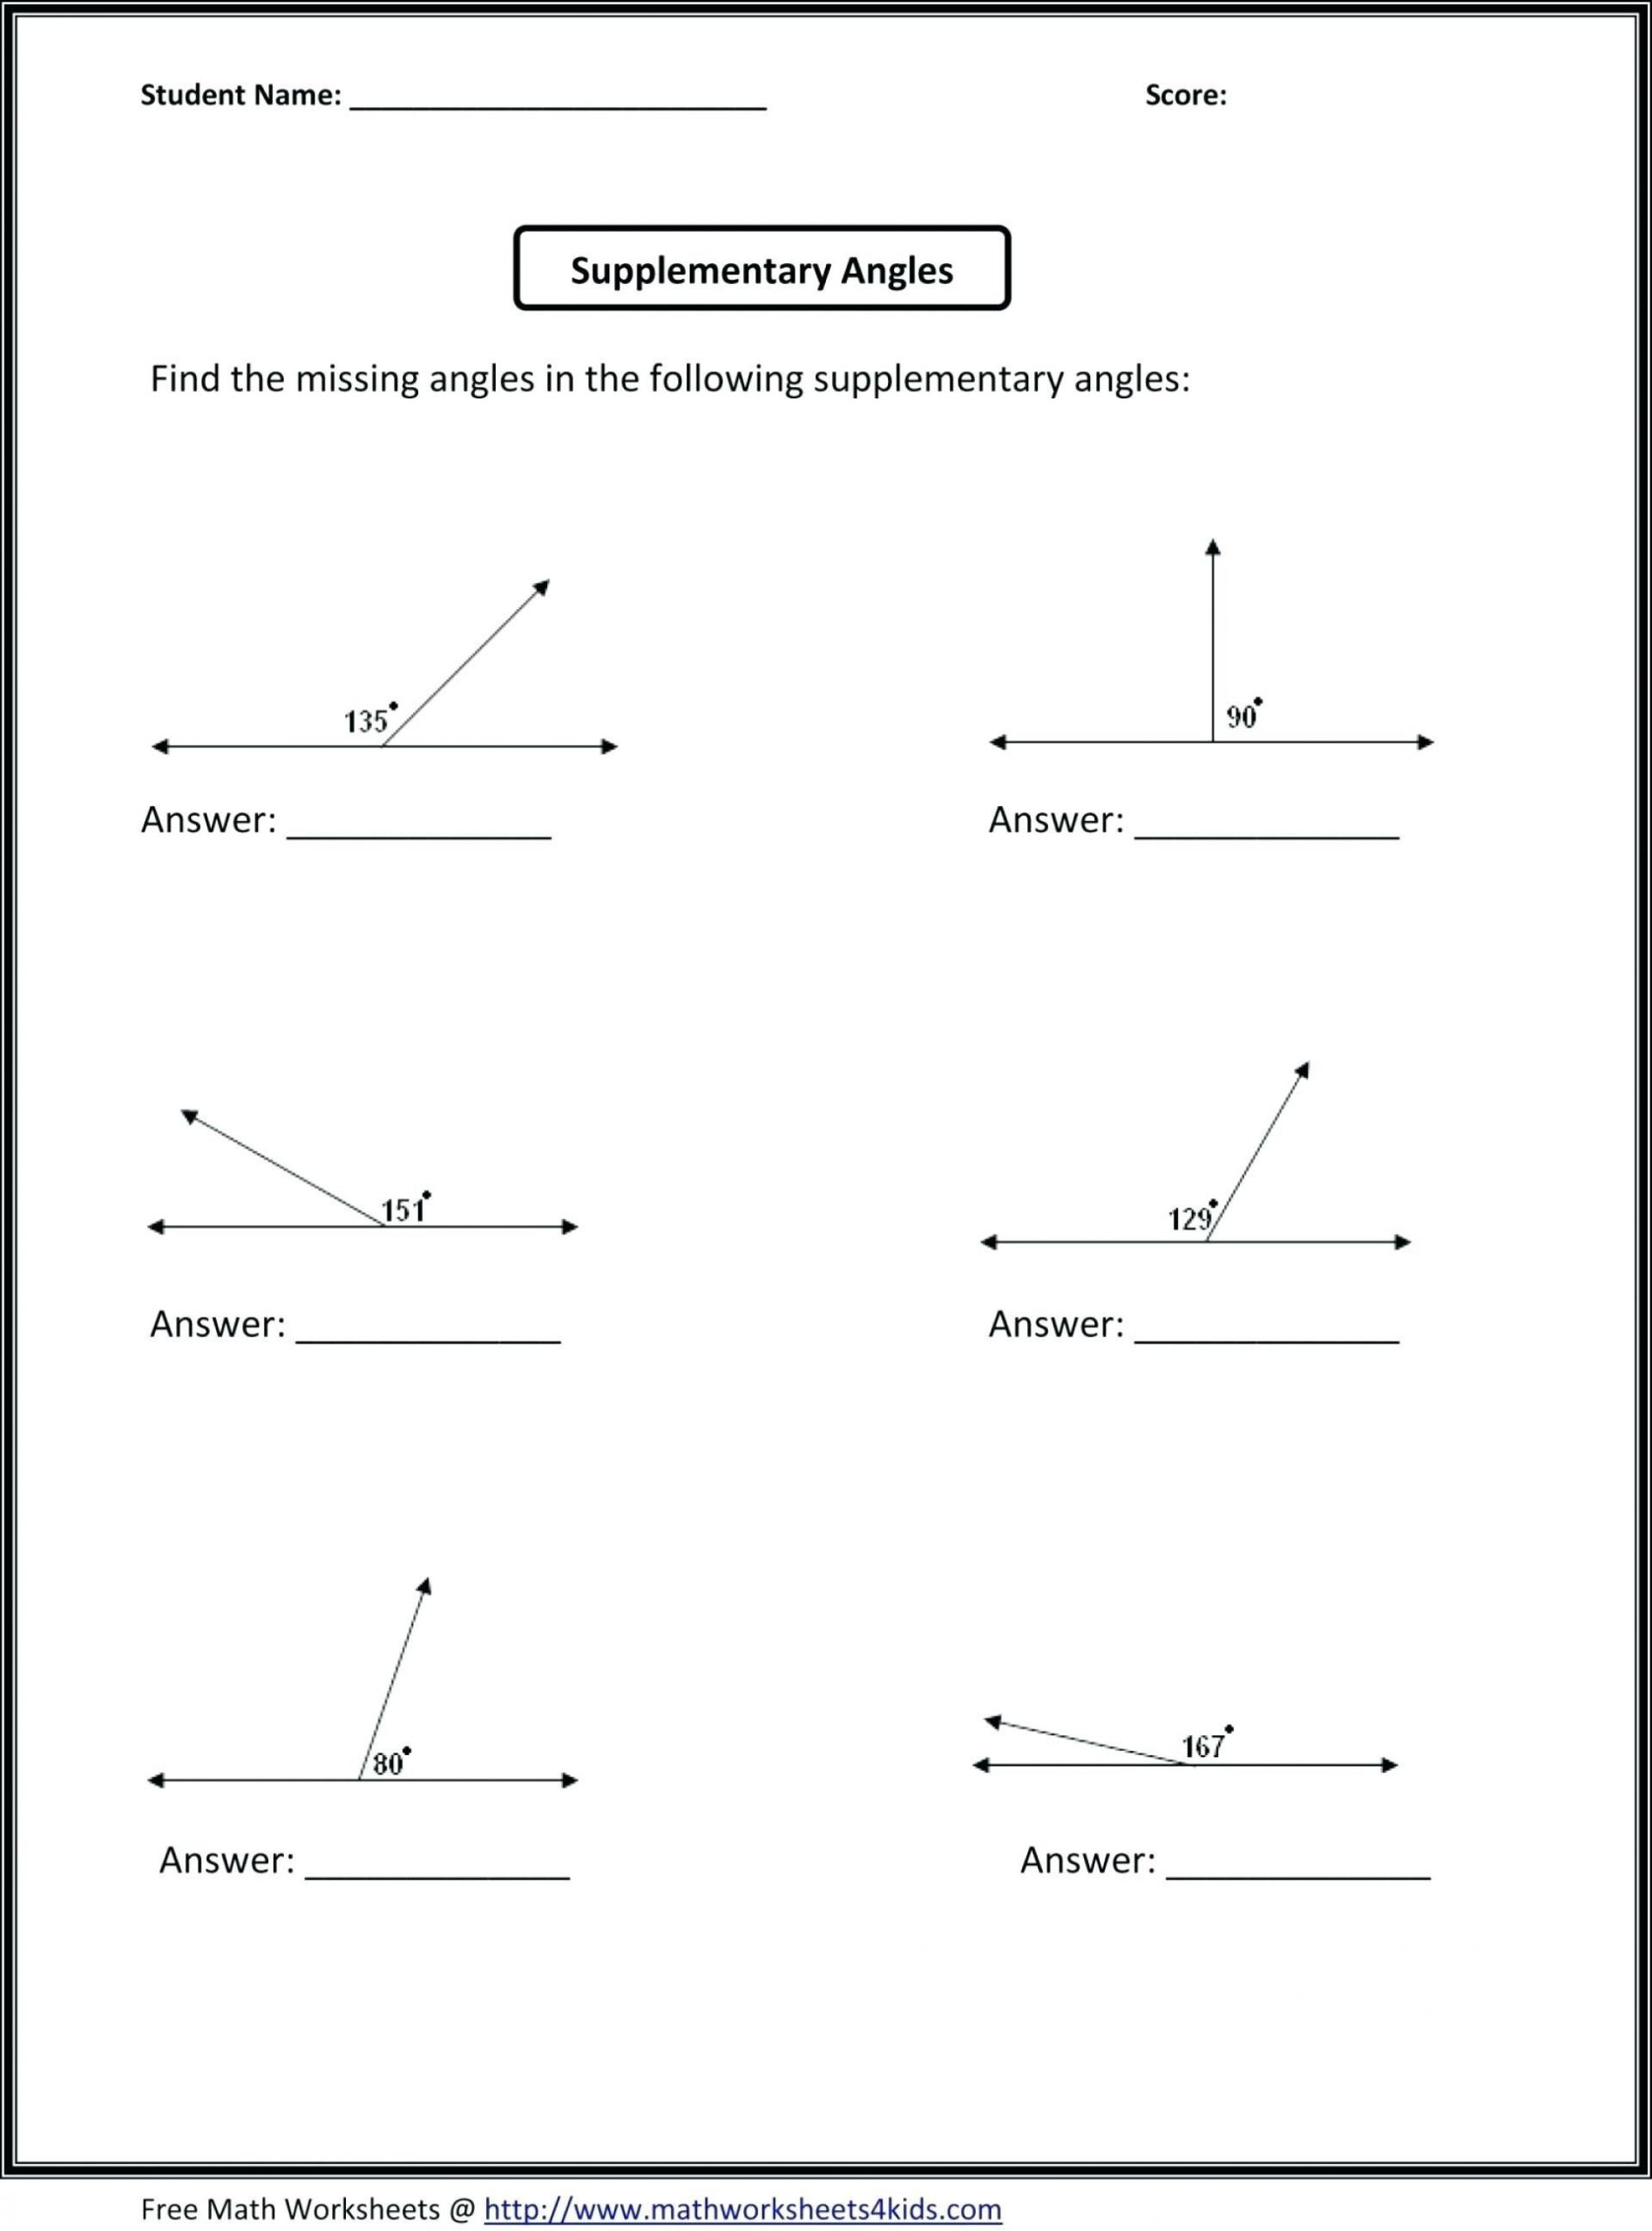 hight resolution of 4 Free Math Worksheets Second Grade 2 Place Value Rounding Round 3 Digit  Numbers Nearest 100 - apocalomegaproductions.com